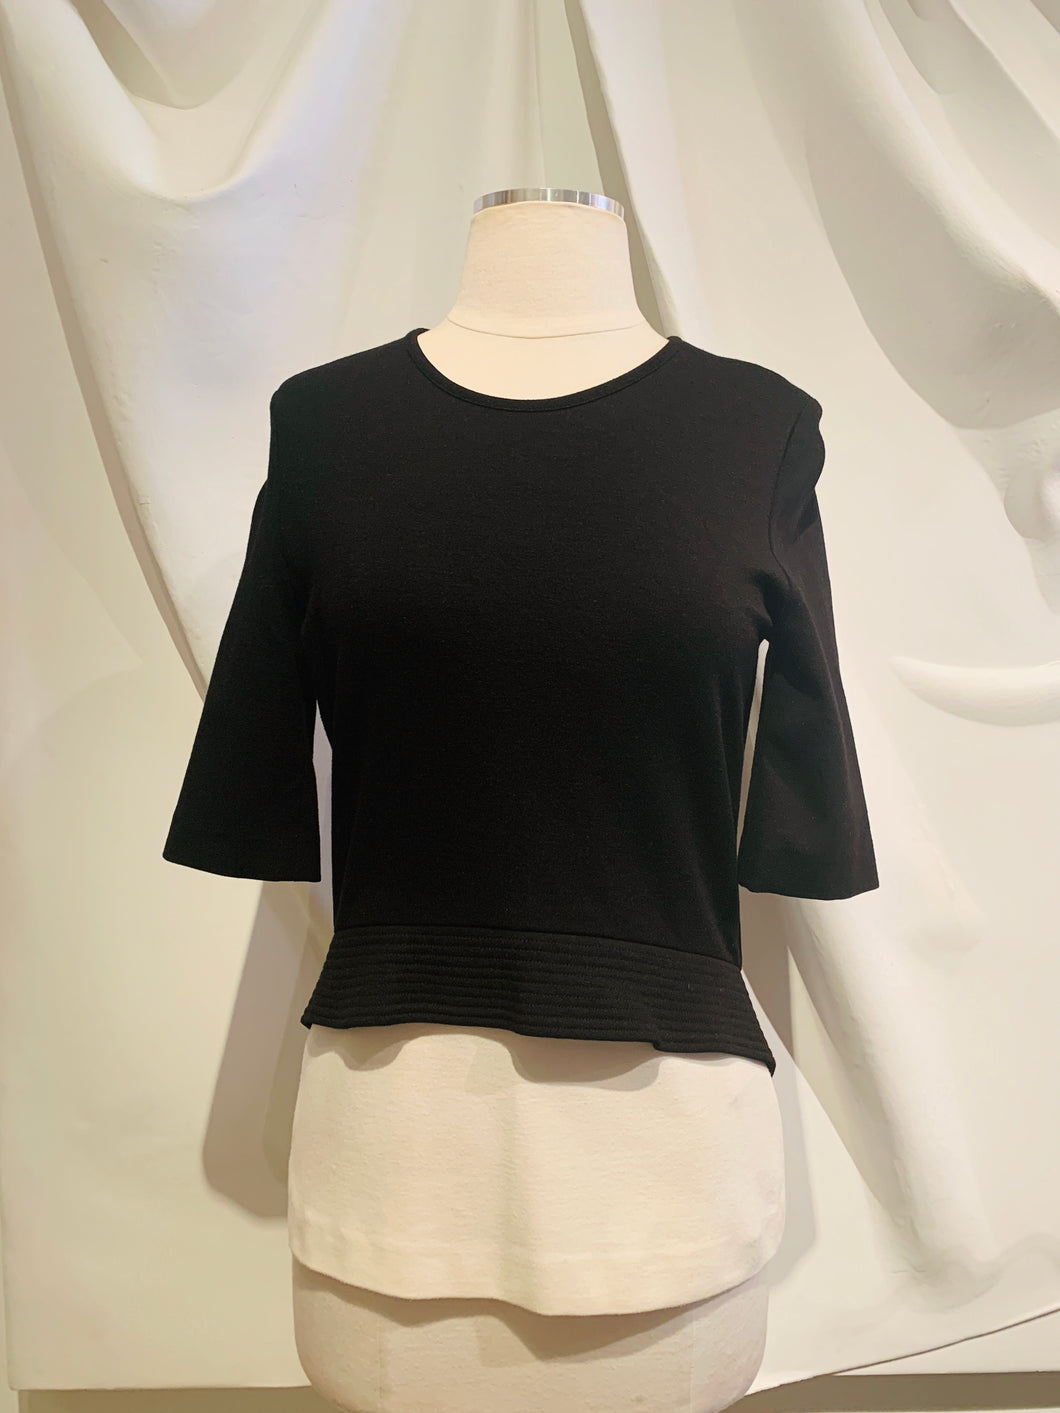 Stella McCartney Black & White Peplum top